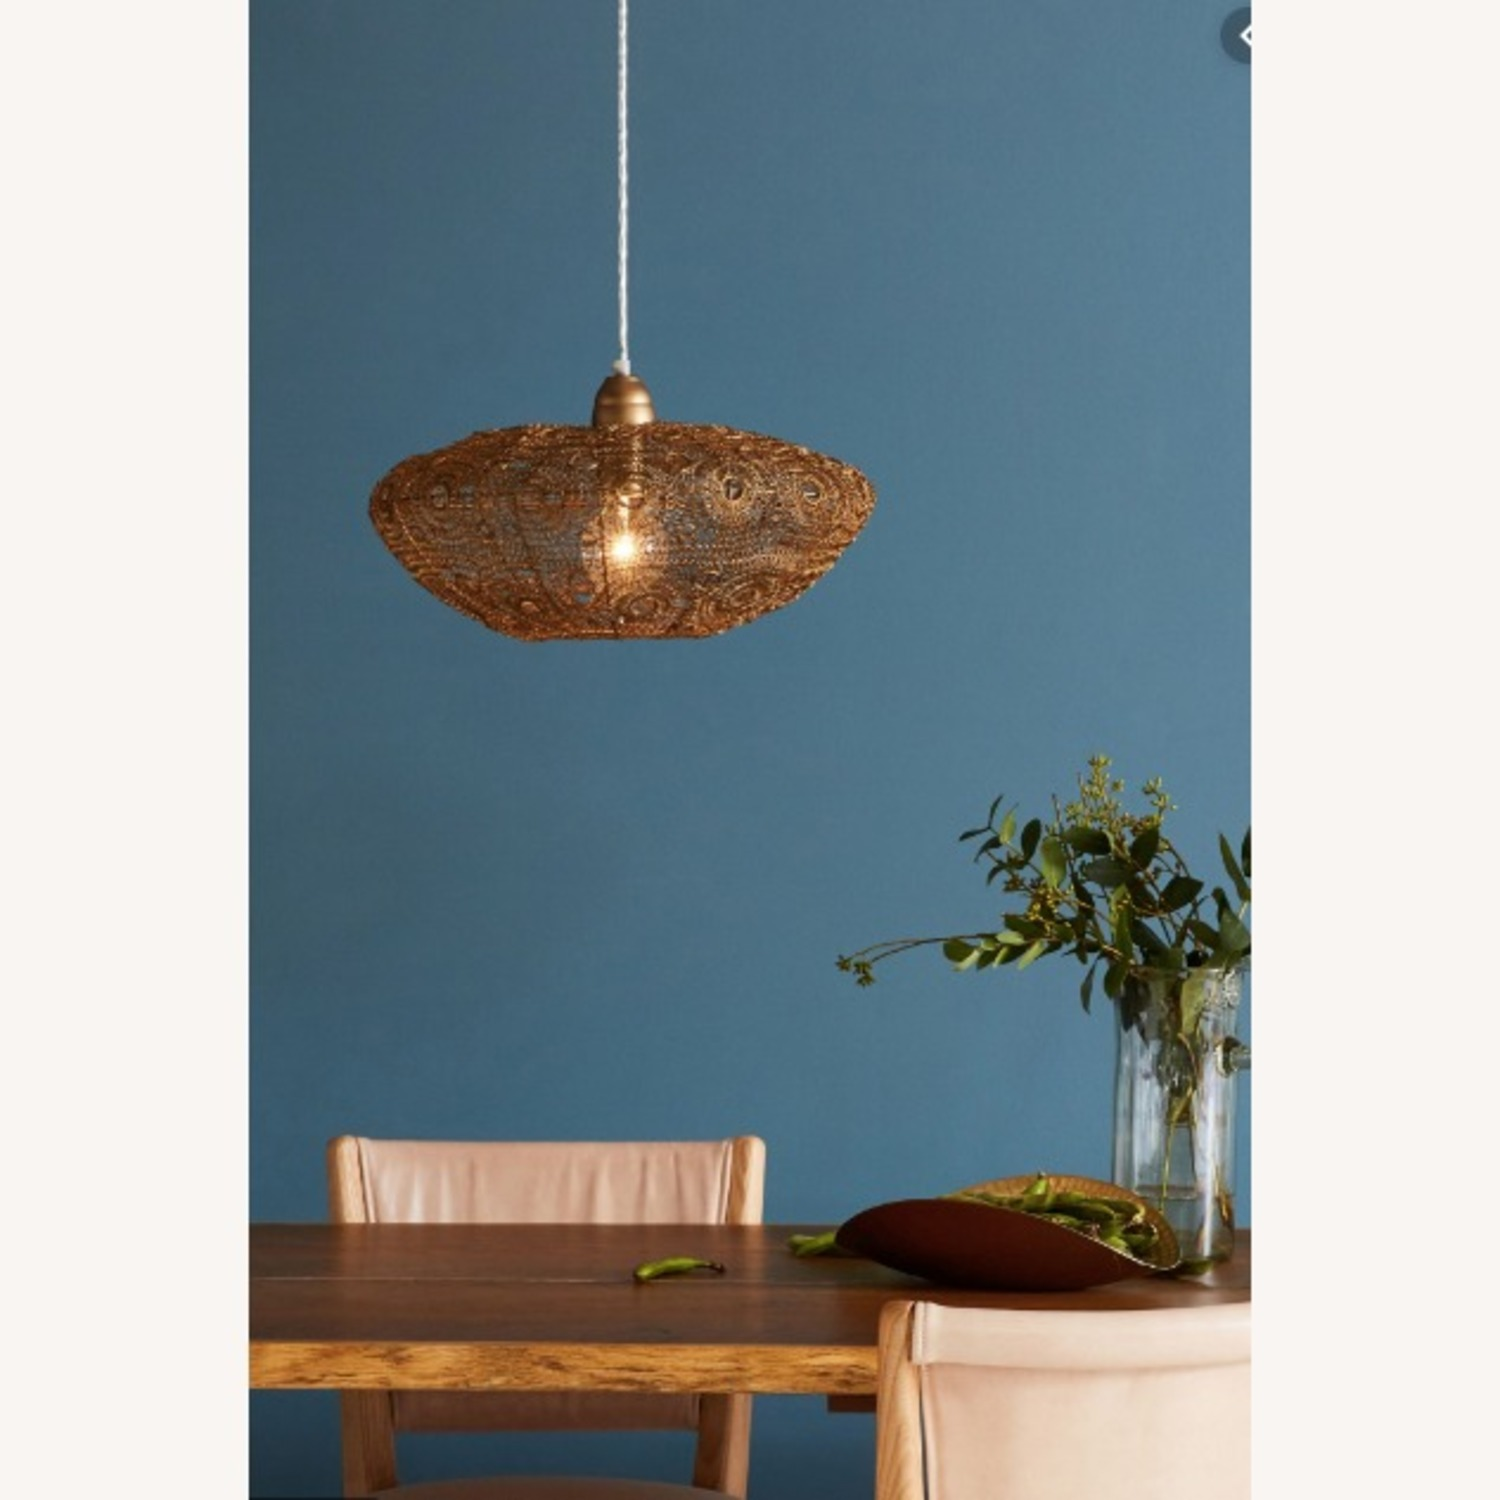 Selamat Designs Vela Stratus Pendant in Antique Brass - image-1